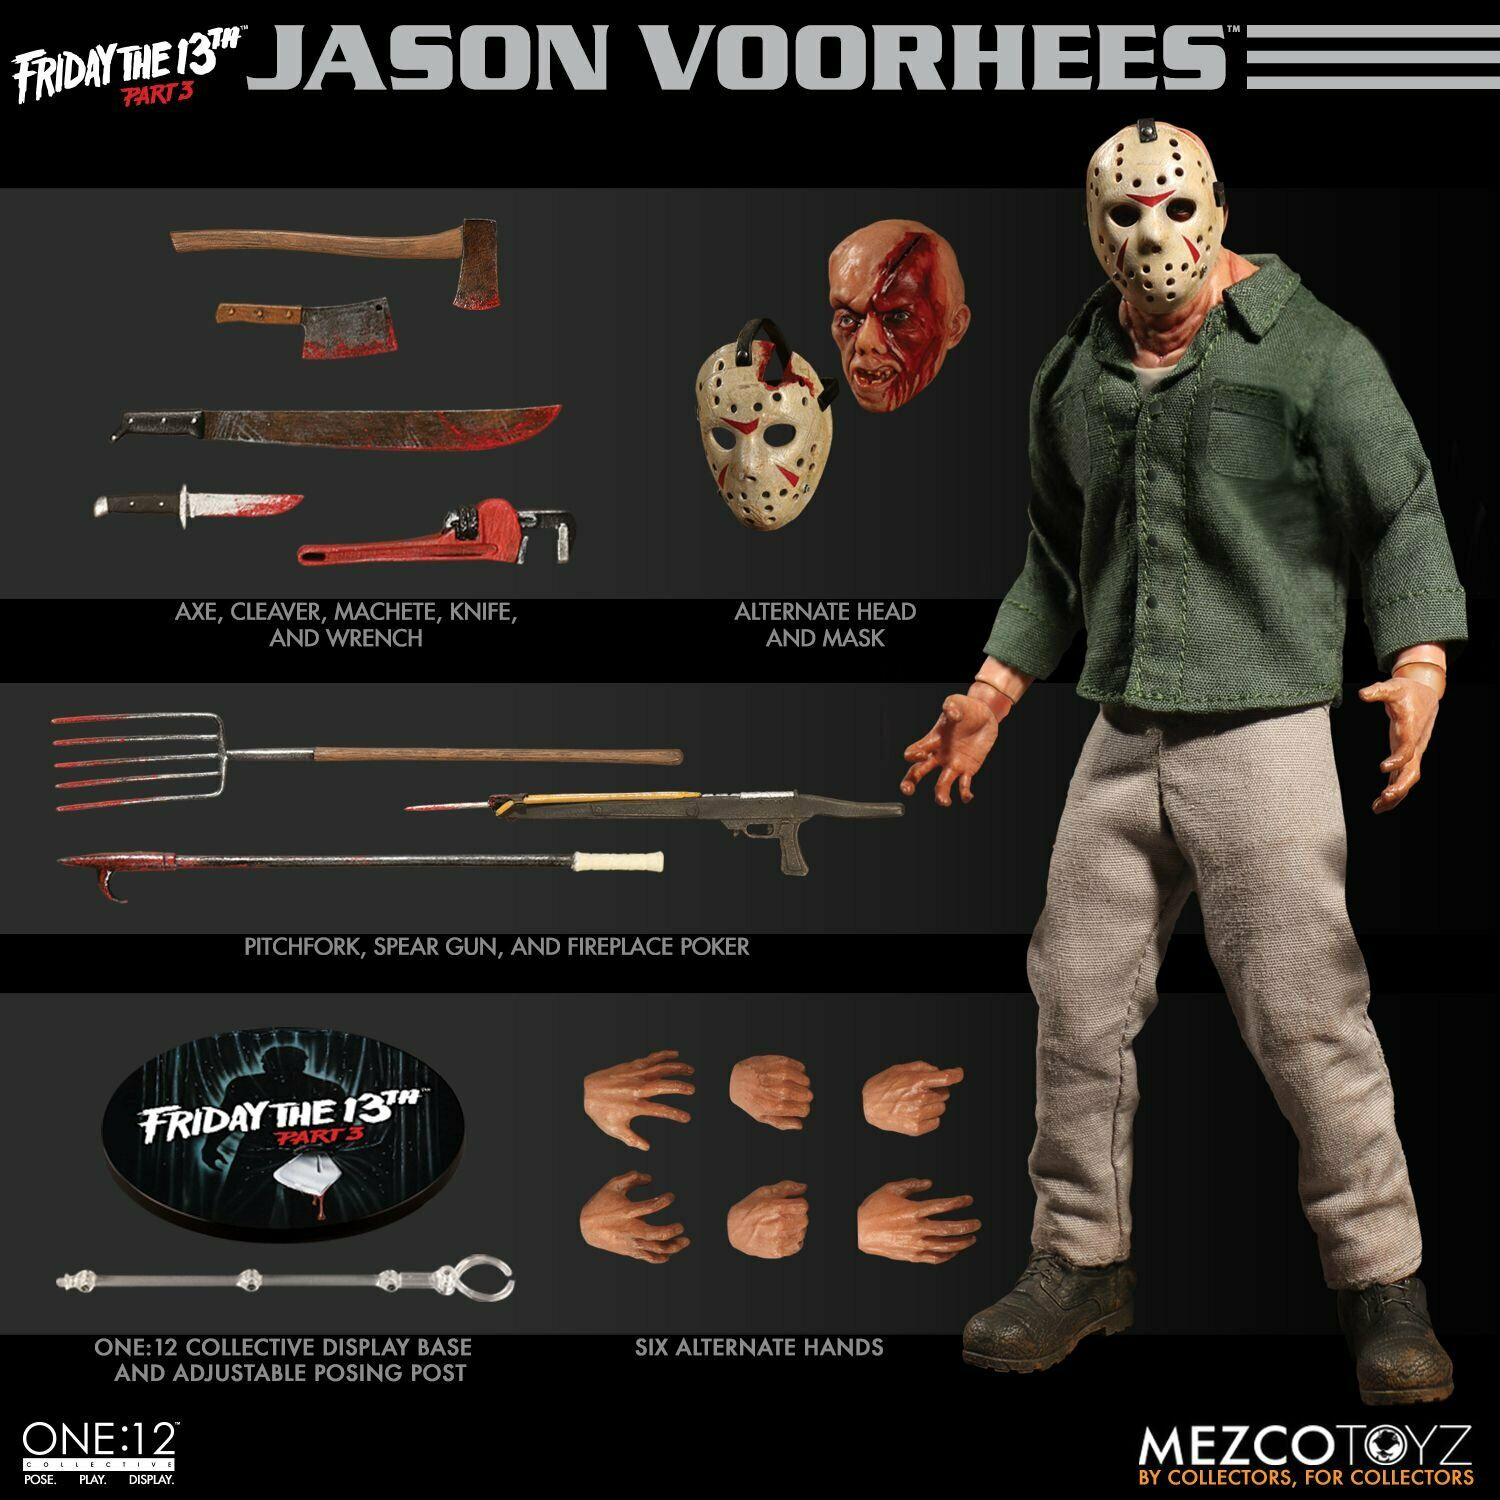 Mezco Toyz 77160 Friday the 13th Part 3 Jason Voorhees 1 12 ACTION FIGURE